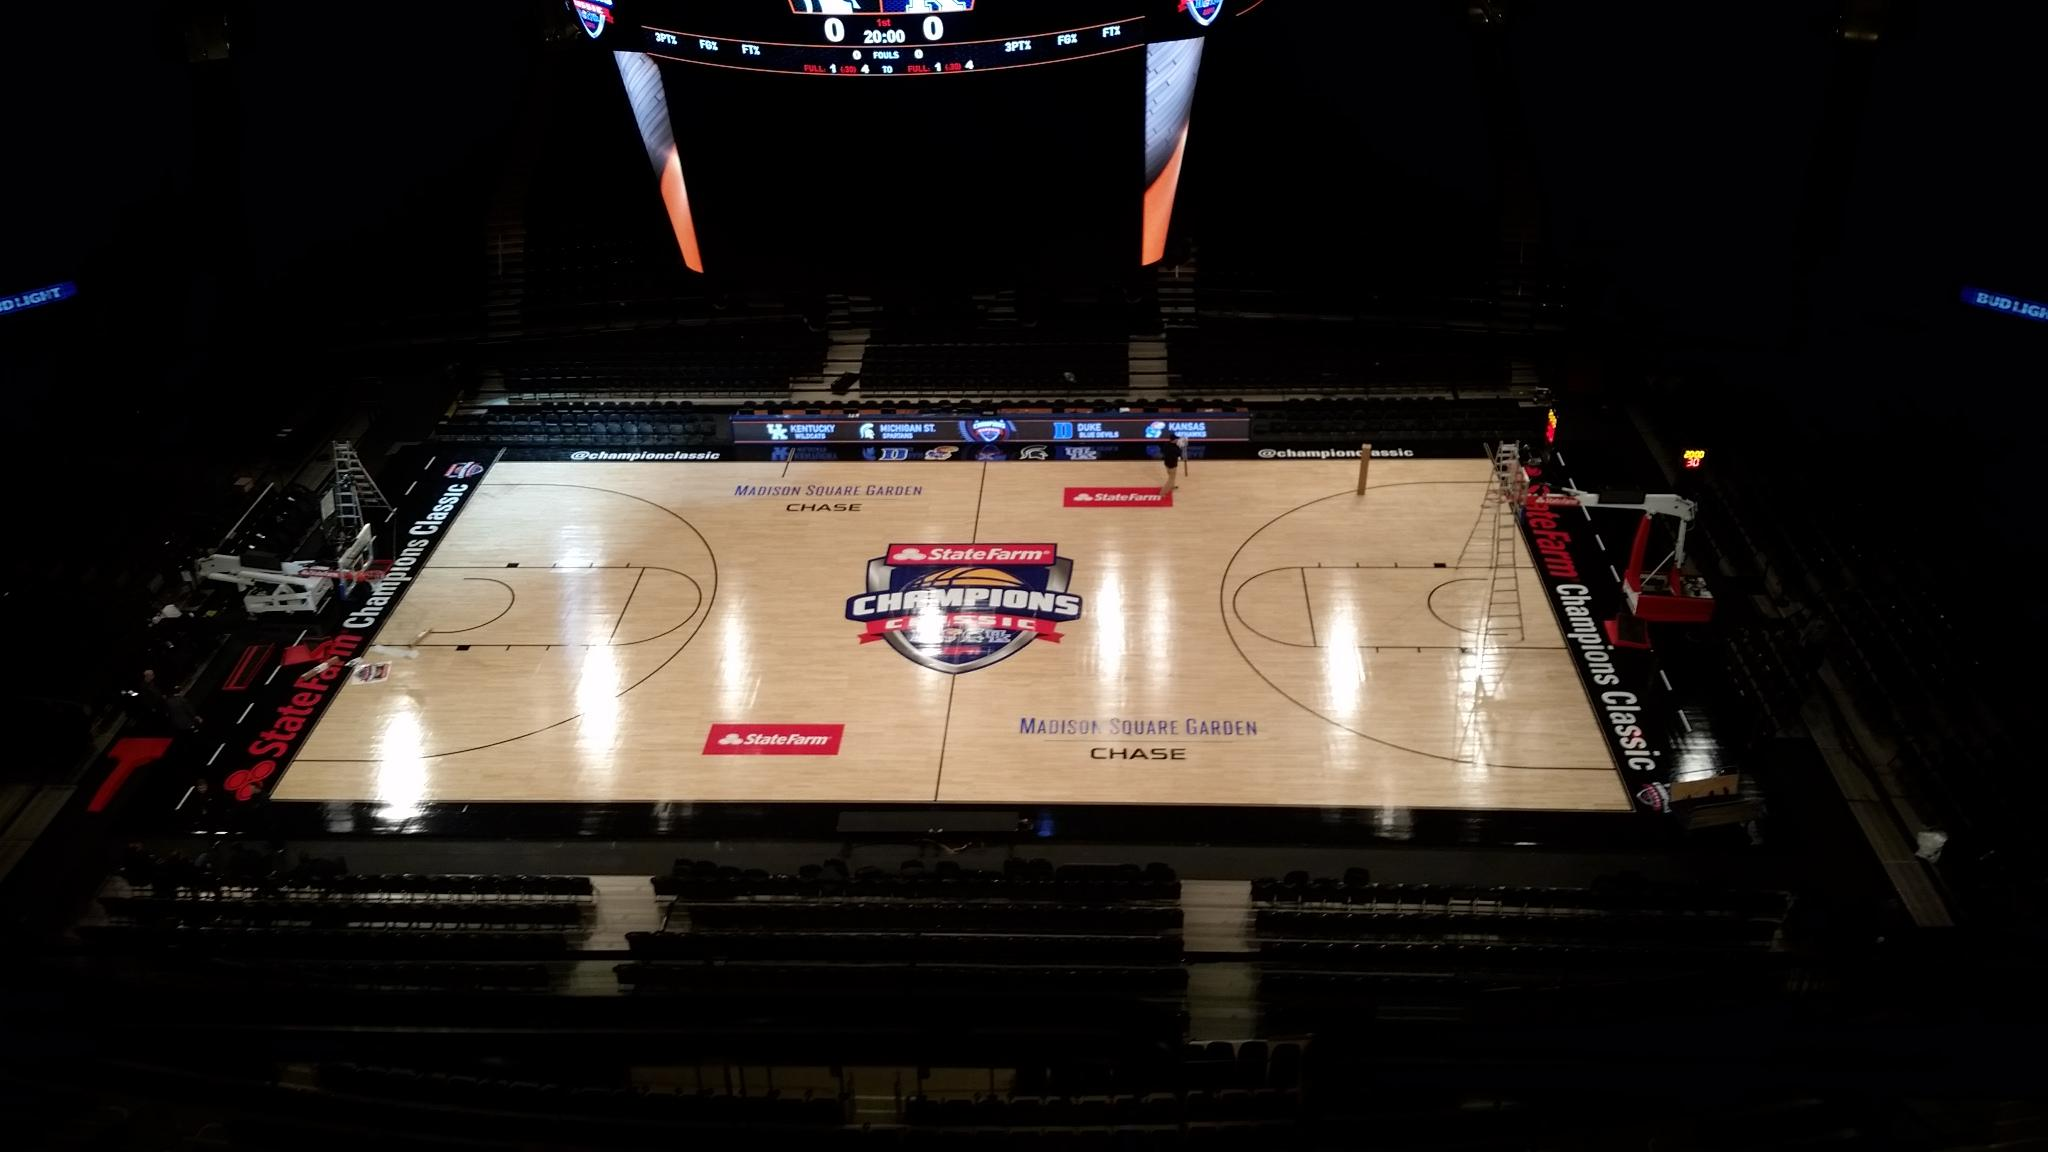 Champions of Sport: Connor Sports Provides Basketball Court for the 2016 State Farm Champions Classic